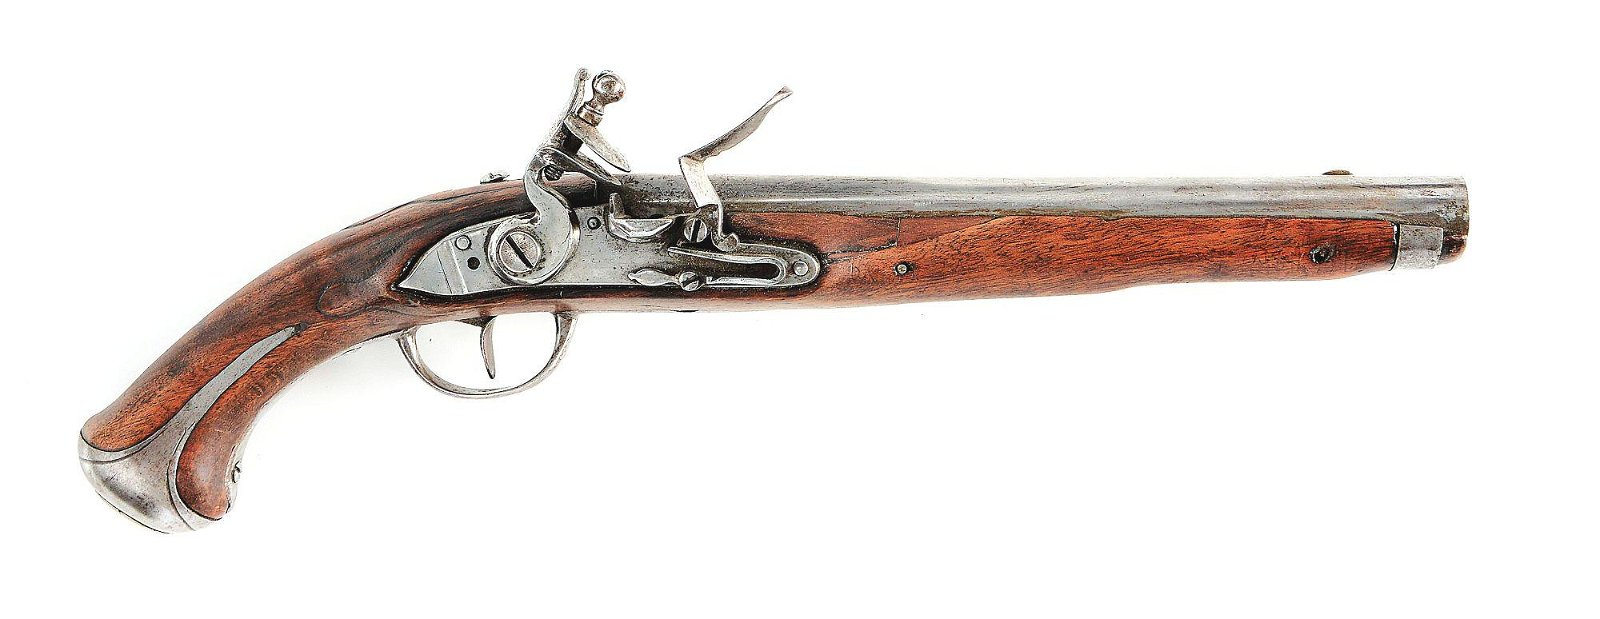 (A) AUSTRIAN MODEL 1770 FLINTLOCK CAVALRY PISTOL.